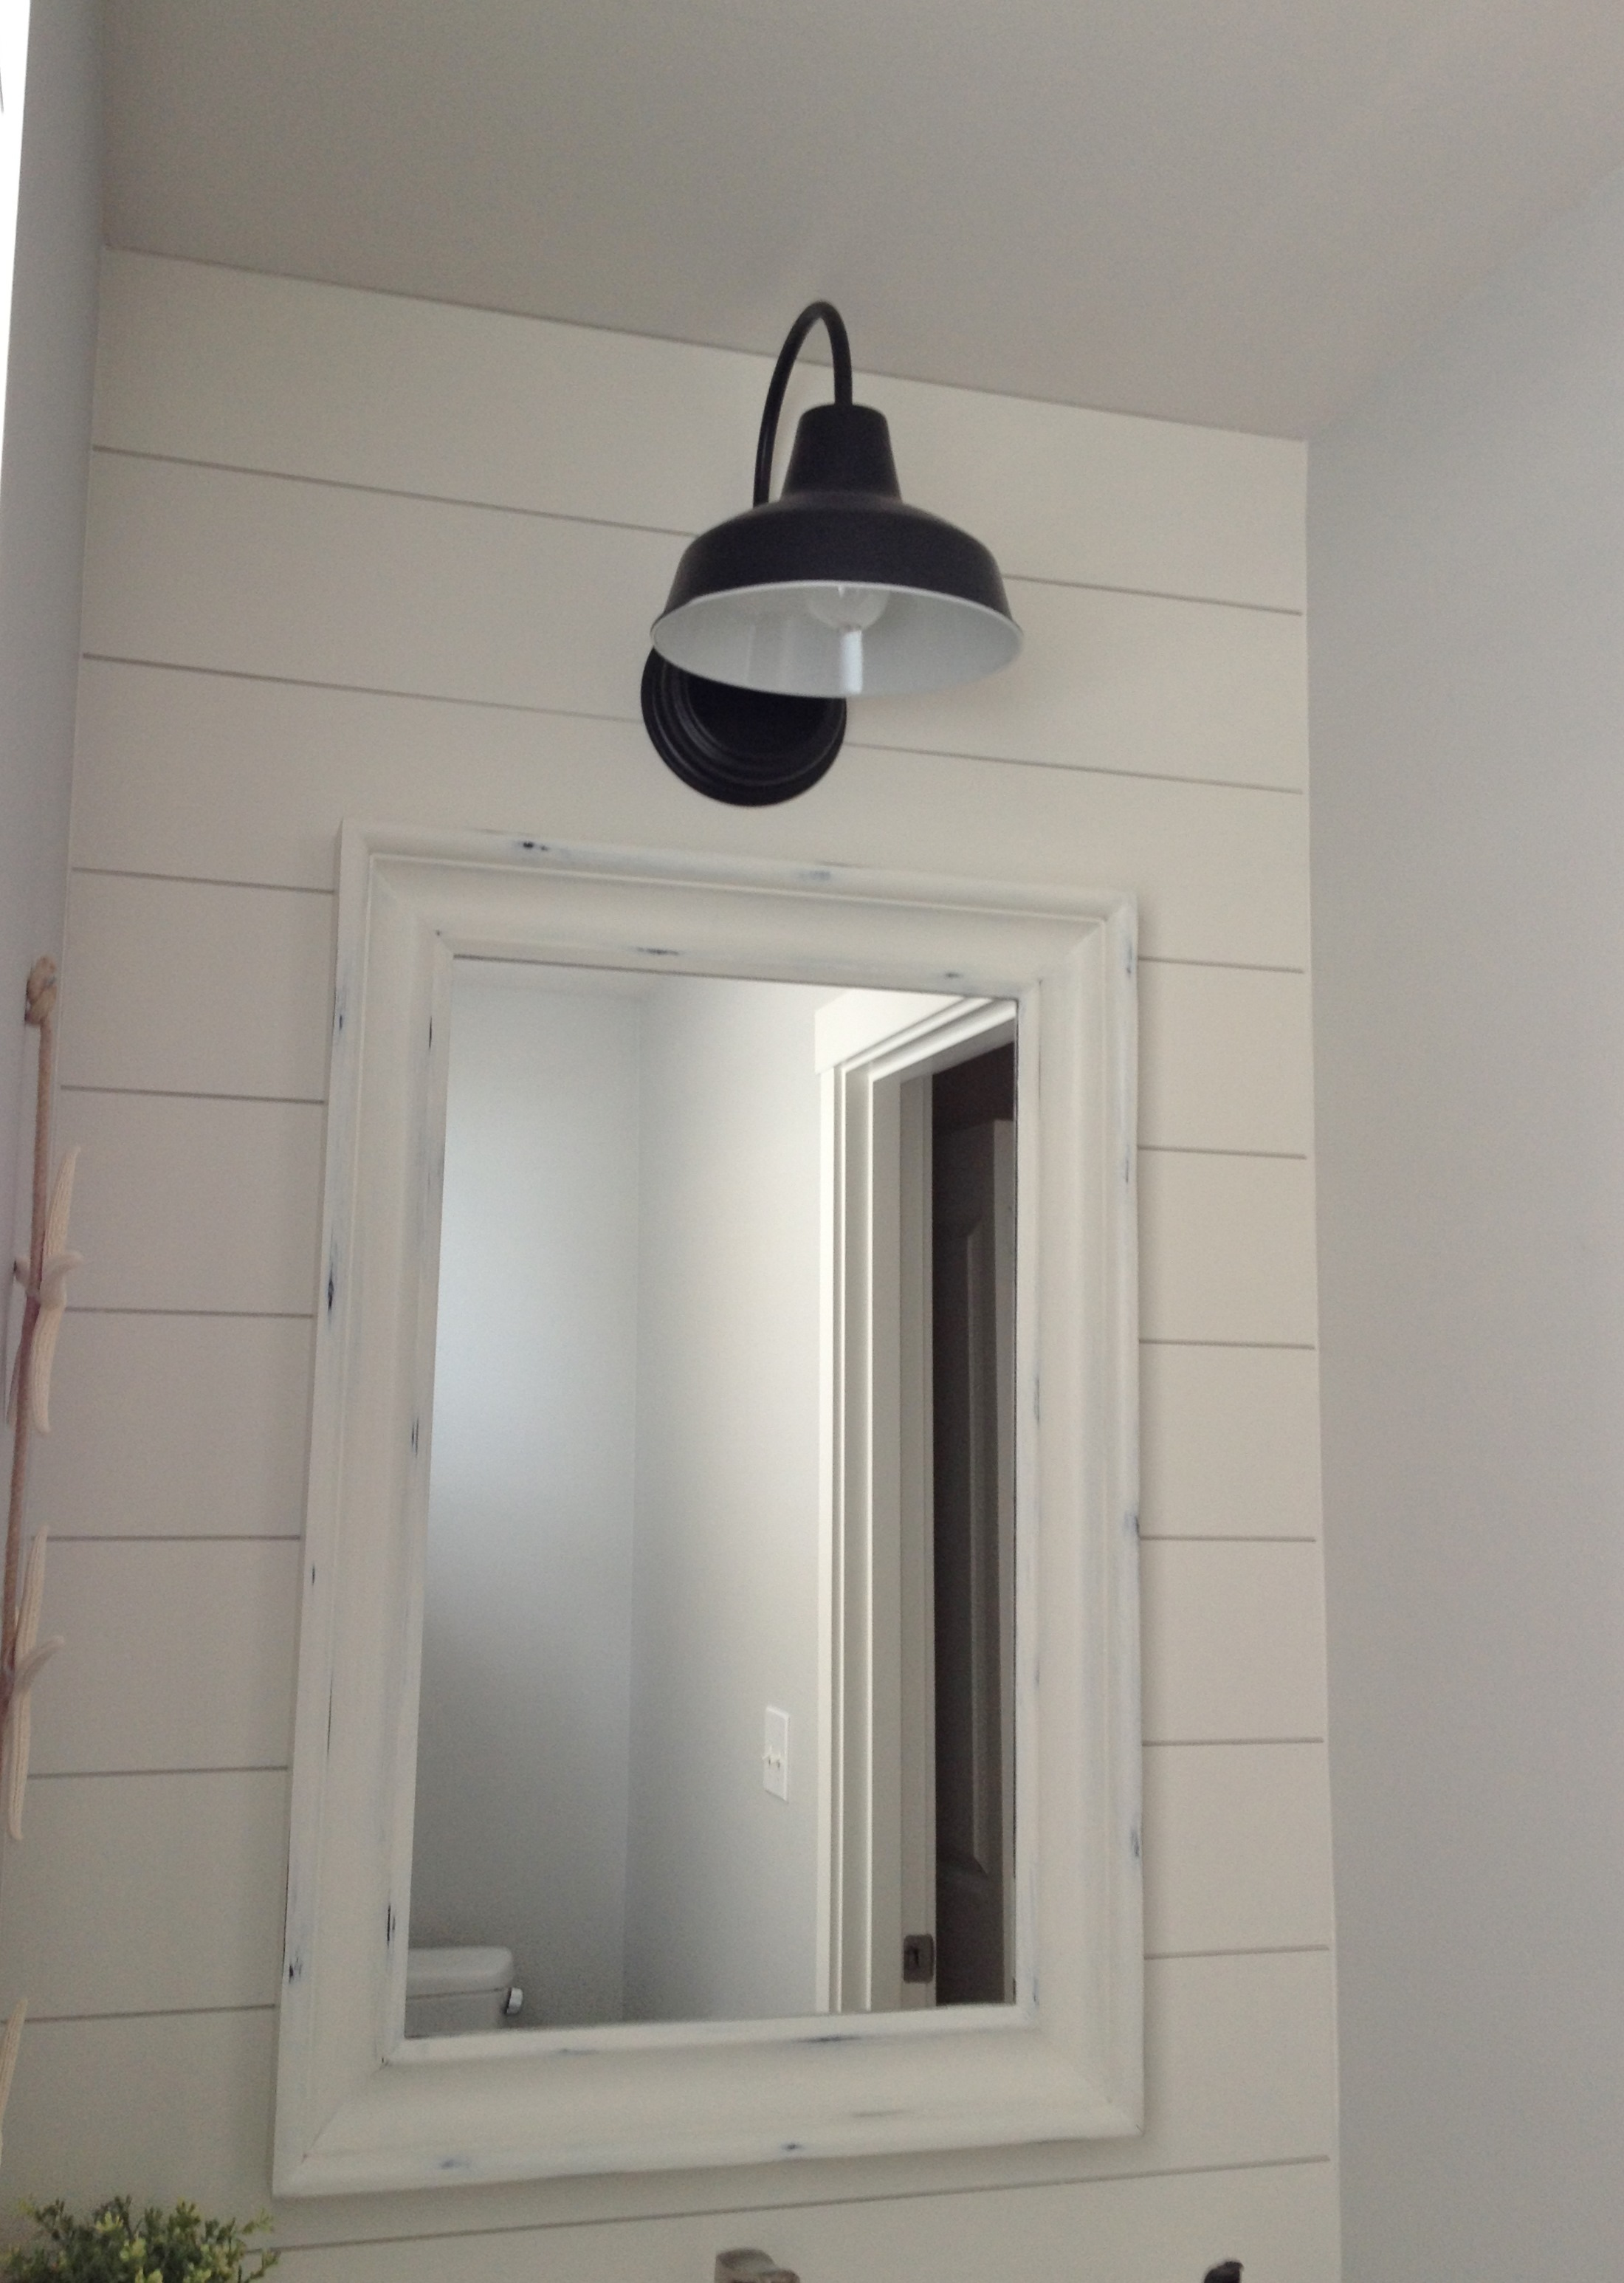 Barn wall sconce lends farmhouse look to powder room remake blog featured customer barn wall sconce lends farmhouse look to powder room remake amipublicfo Images